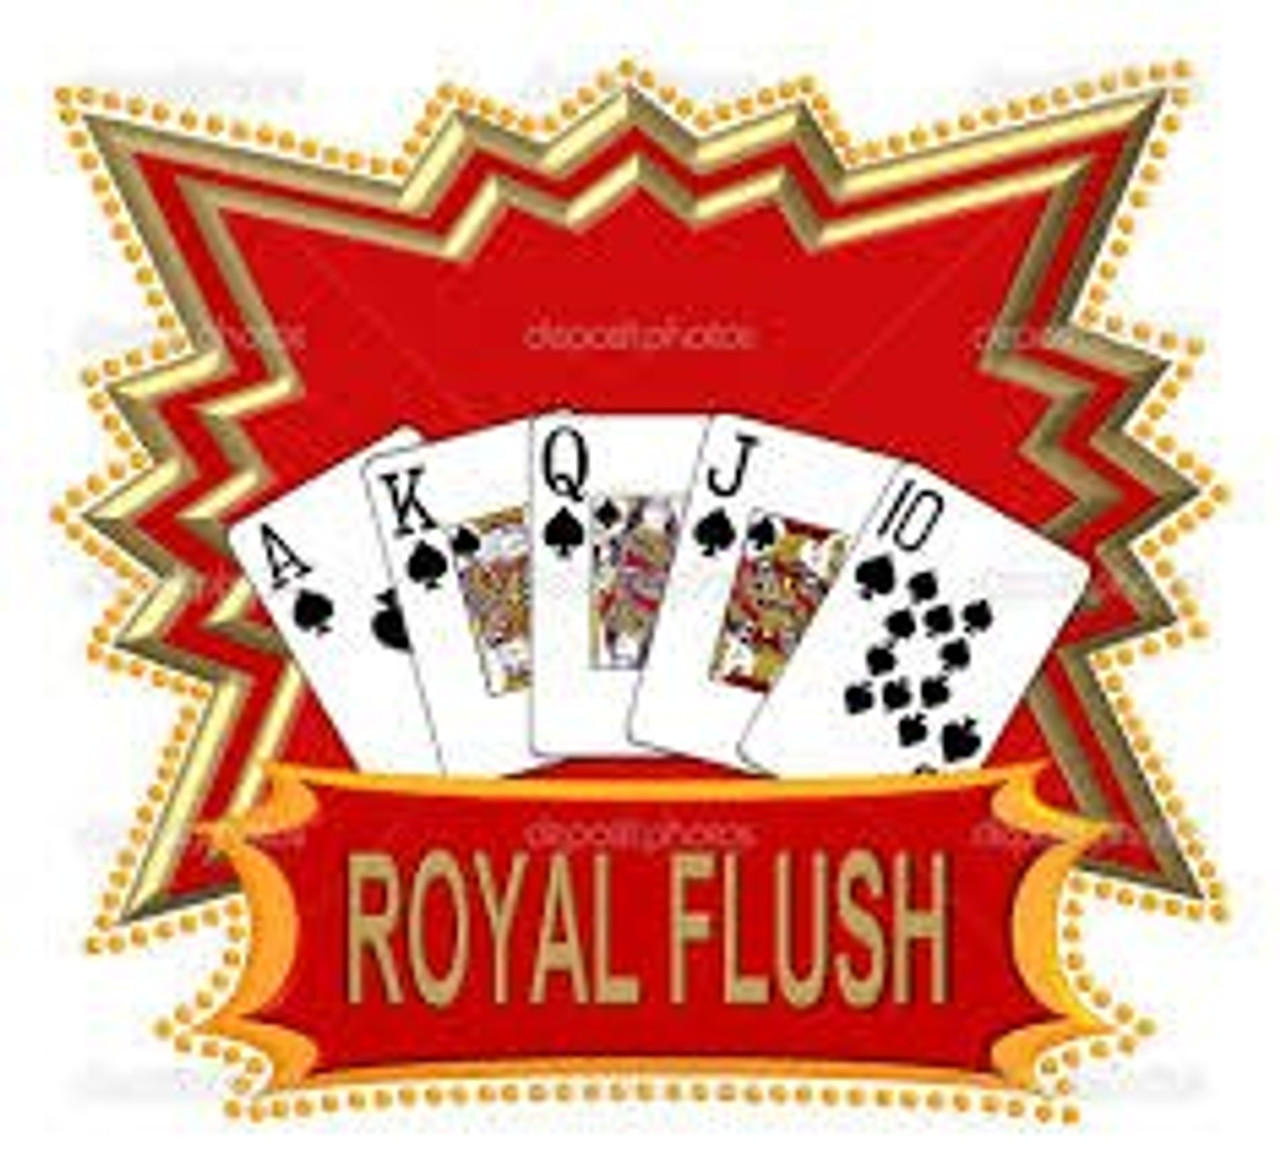 Poker Chip Set Royal Flush 500pc 11.5g with Case & FREE OFFER